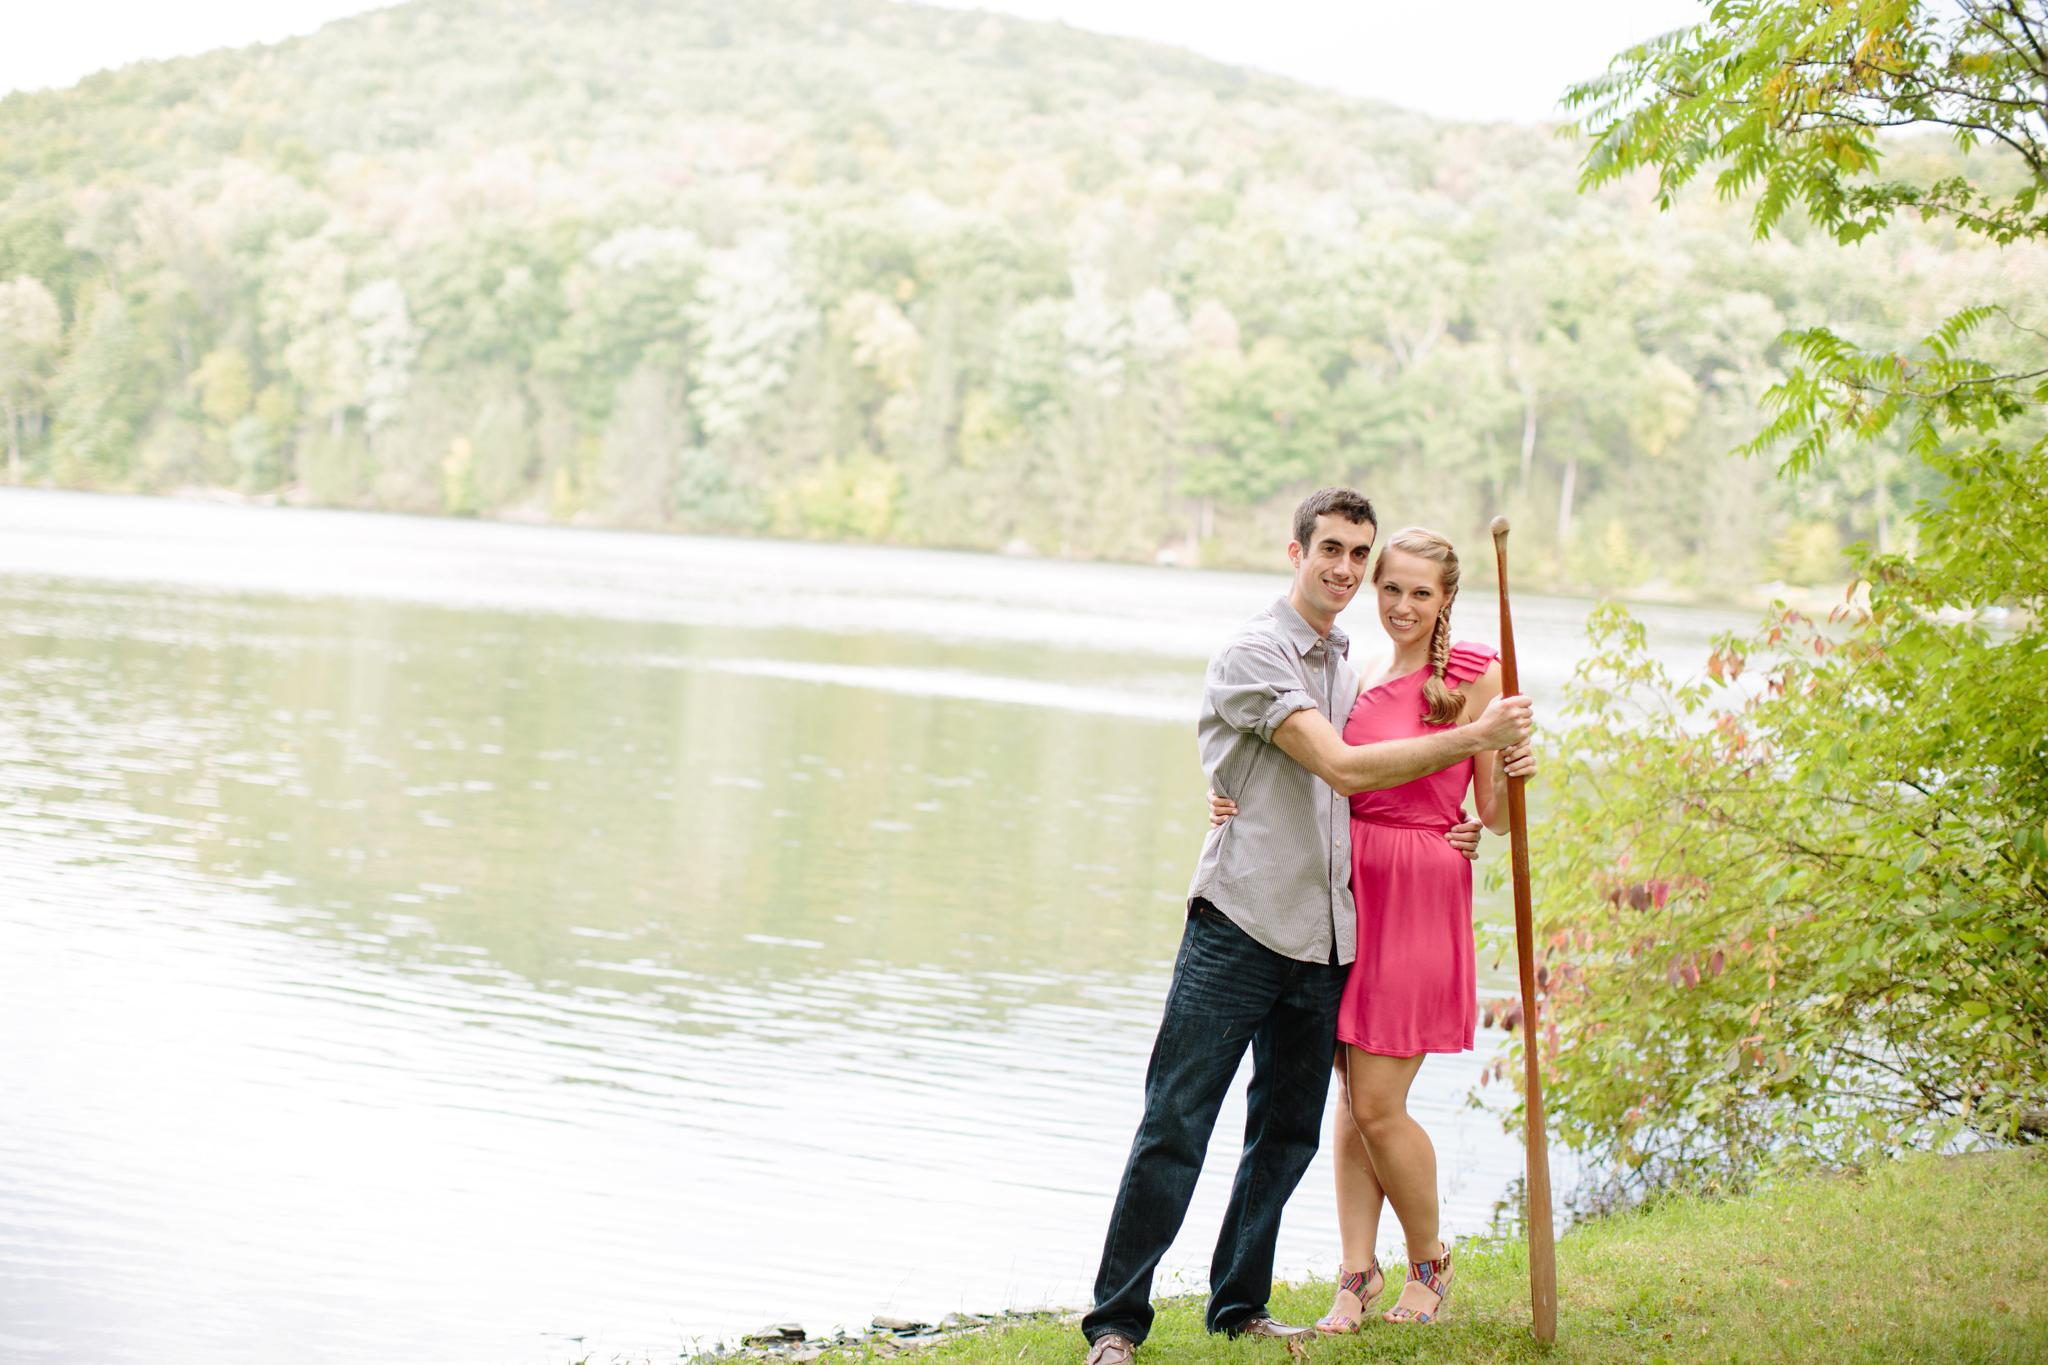 saddle_lake_engagement_session-60.jpg